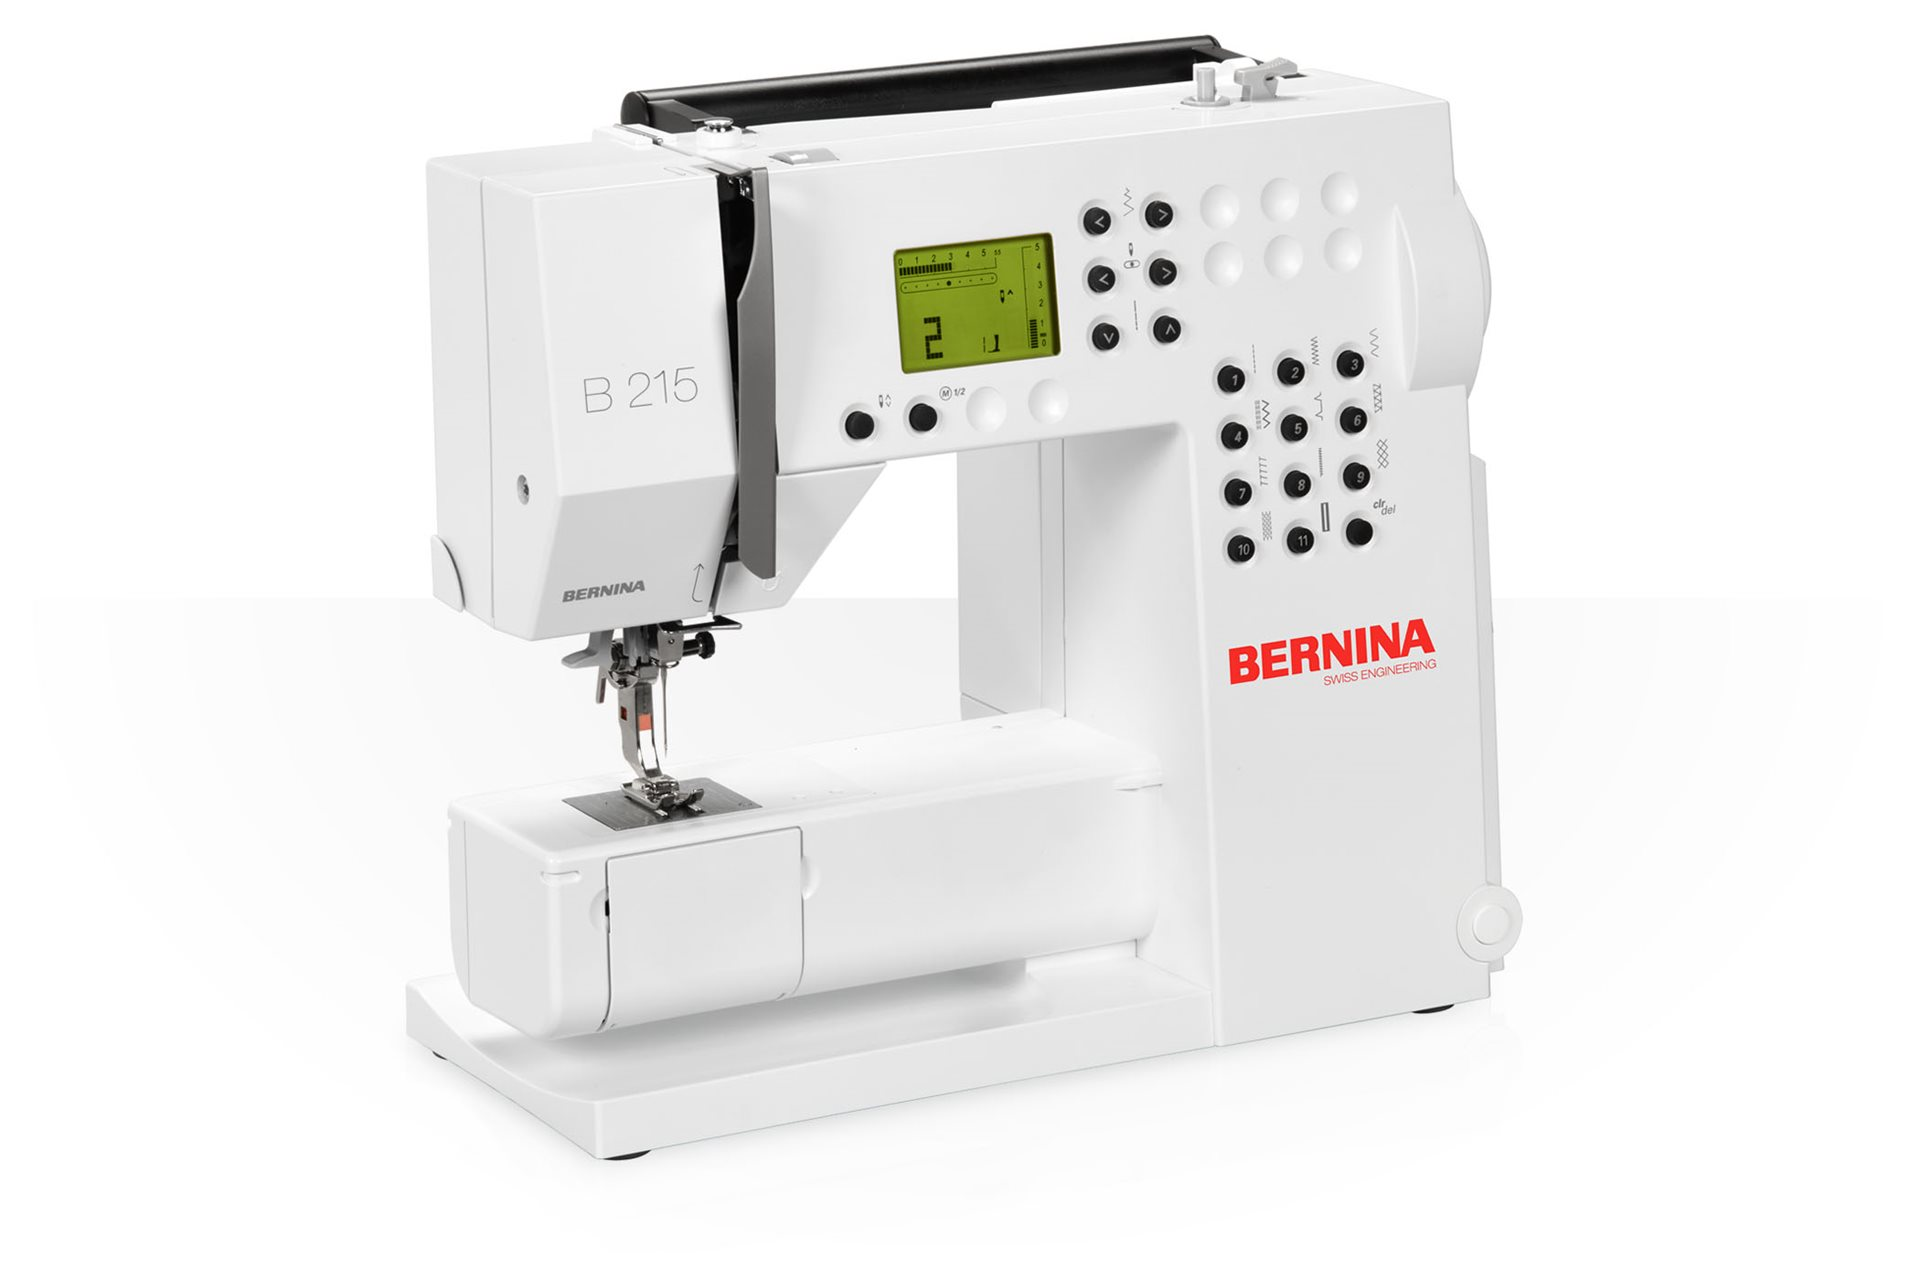 BERNINA 2 Series